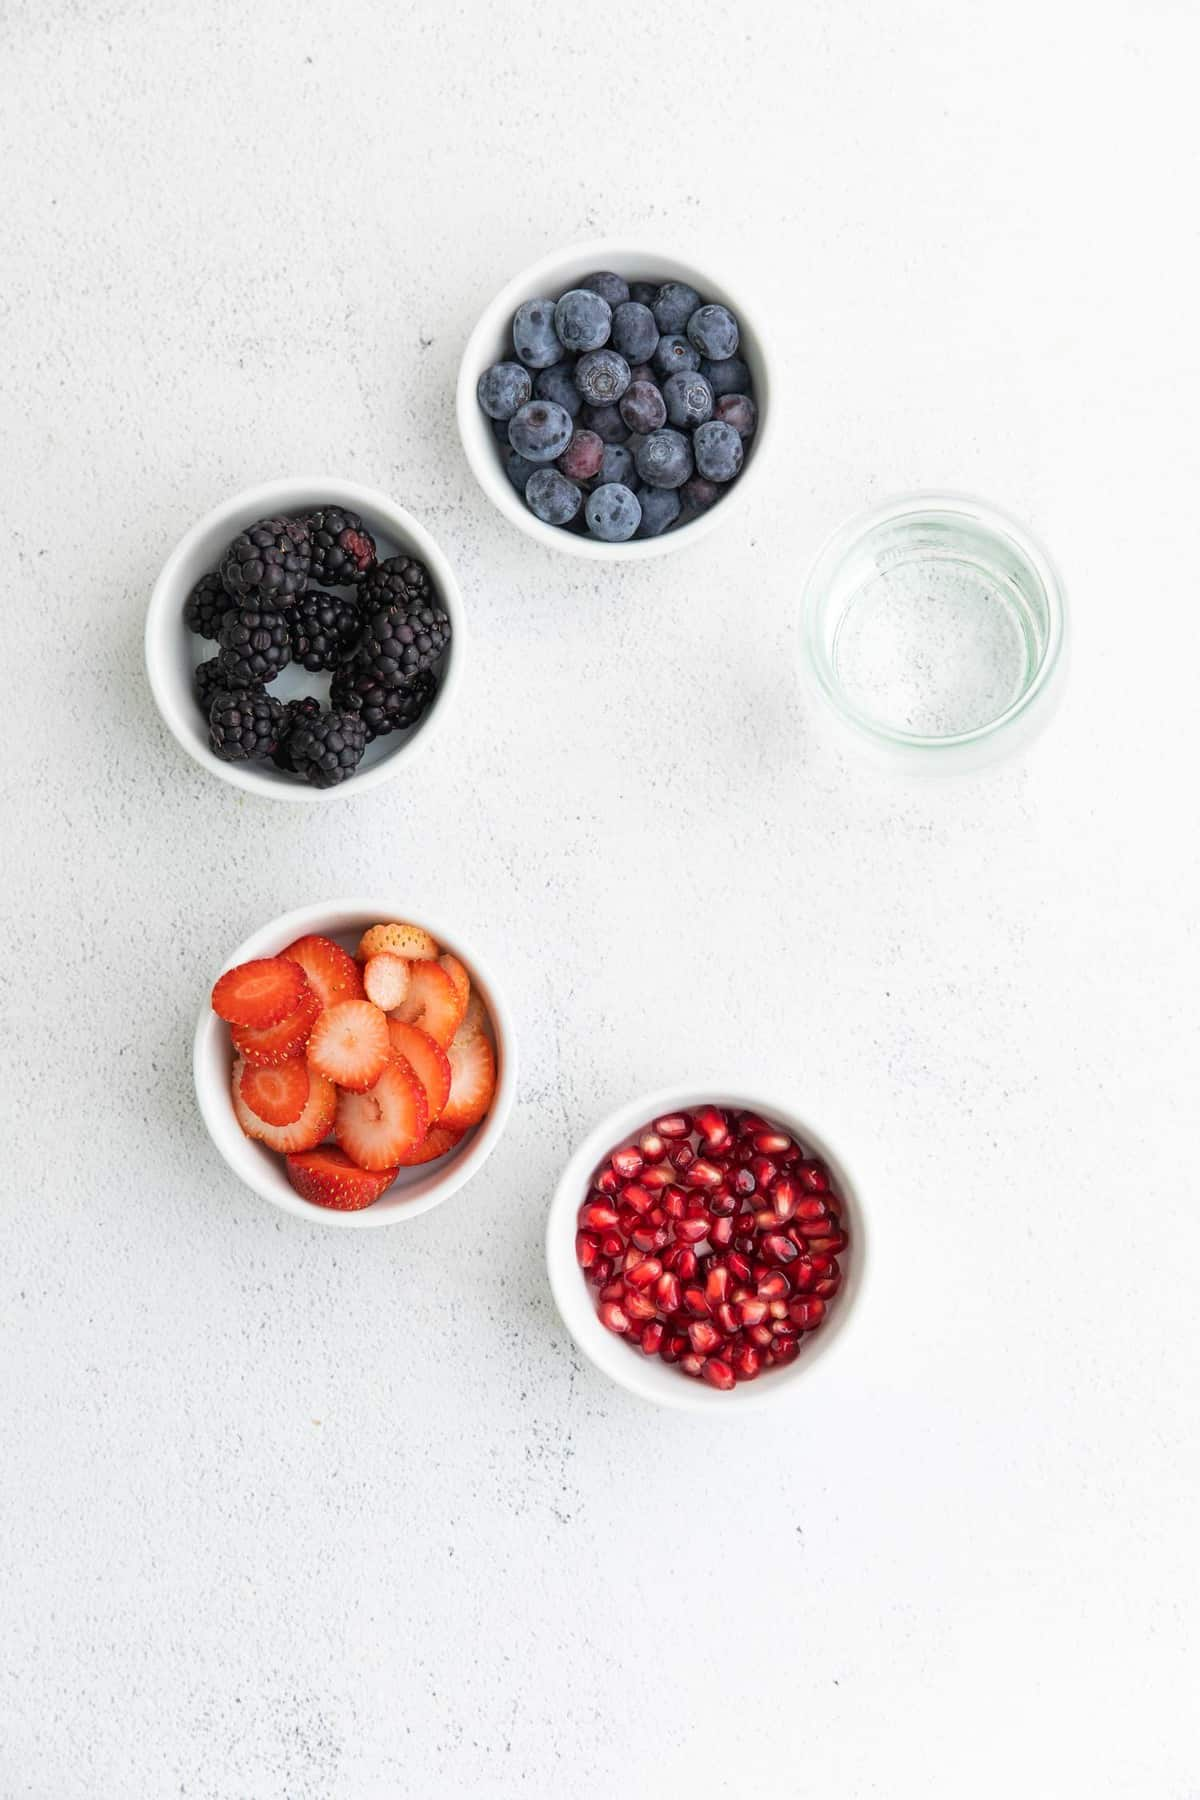 Fruit in separate bowls.